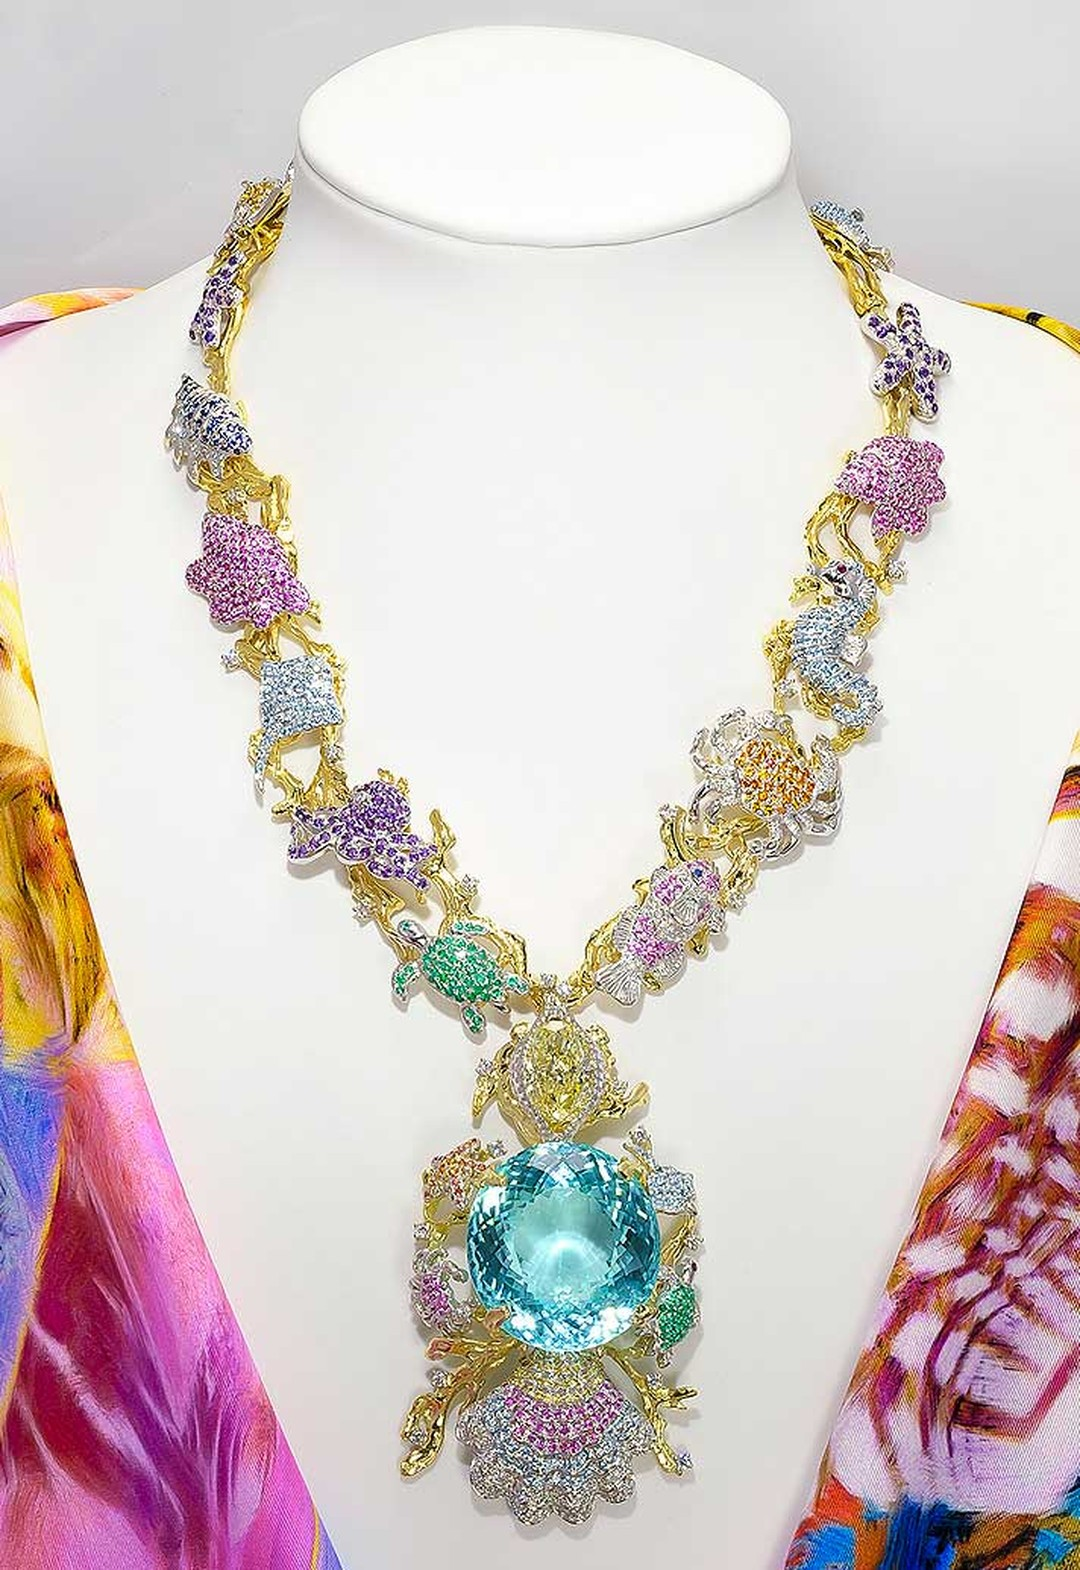 The 'Ethereal Carolina Divine Paraiba', at 191.87ct the world's largest cut Paraiba tourmaline, has been set into a one-of-a-kind Paraiba Star of the Ocean Jewels' necklace designed by Canadian jewellery house Kaufmann de Suisse.